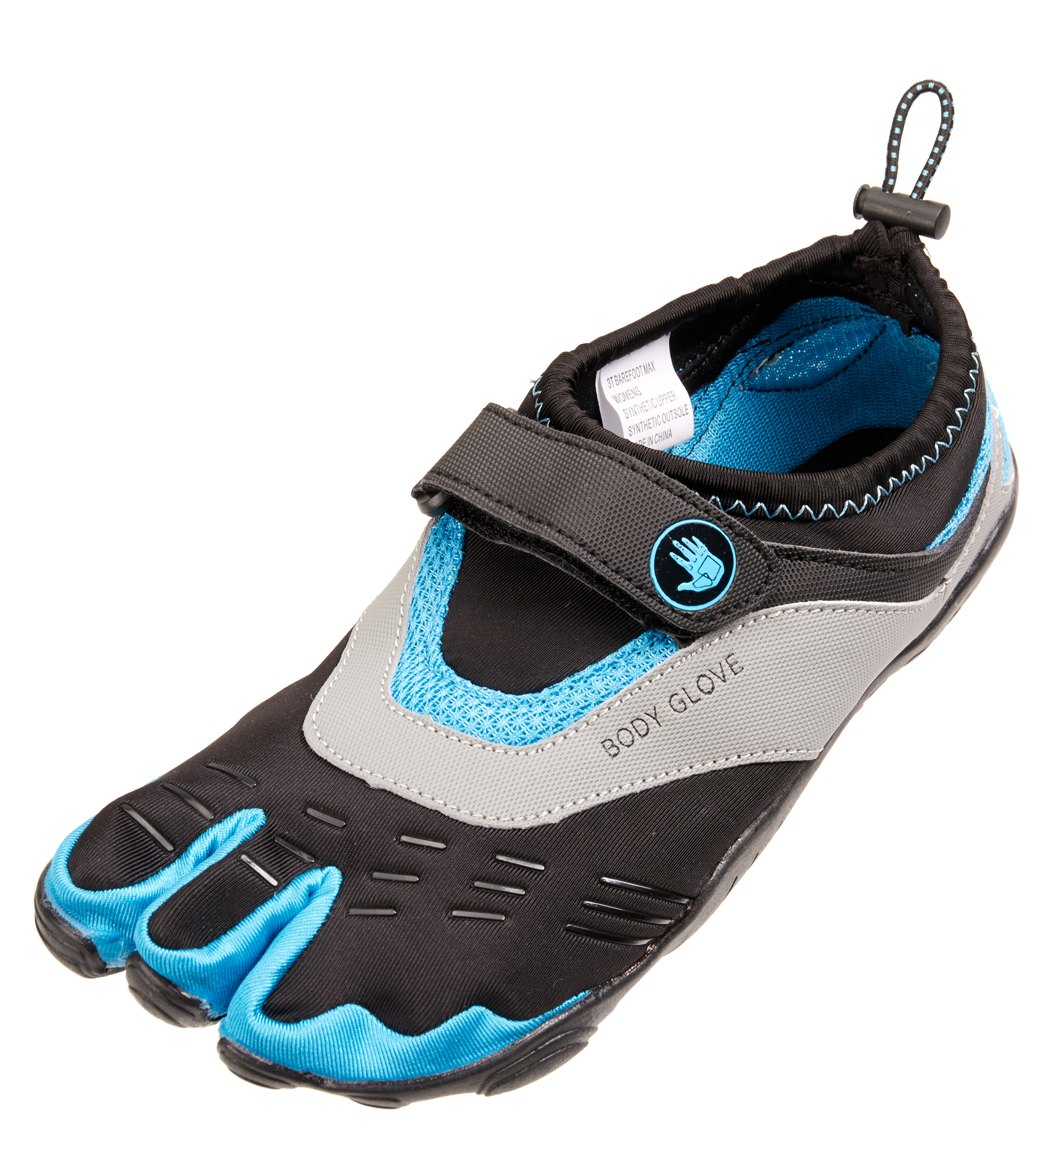 9d497a3ee129 Body Glove Women s 3T Barefoot Max Water Shoe at SwimOutlet.com ...